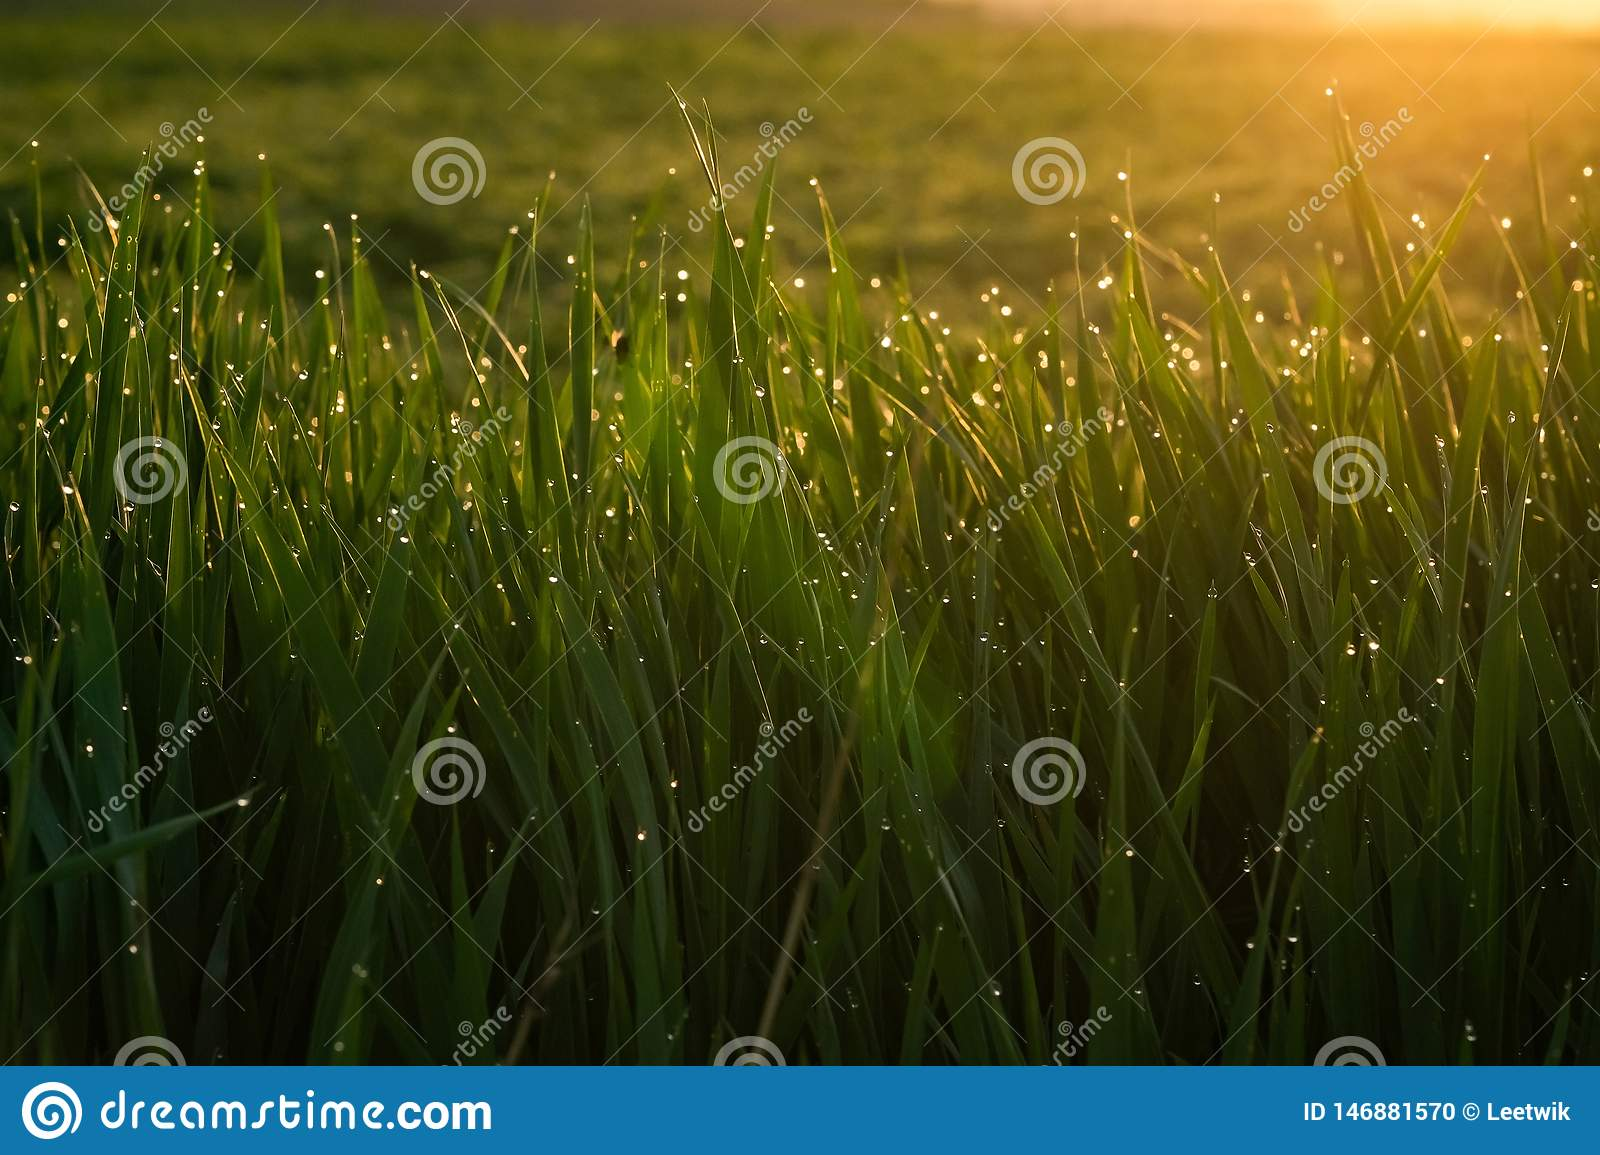 Green grass with drops of dew at sunrise in spring in the sunlight background beauty of nature awakening vegetation concept